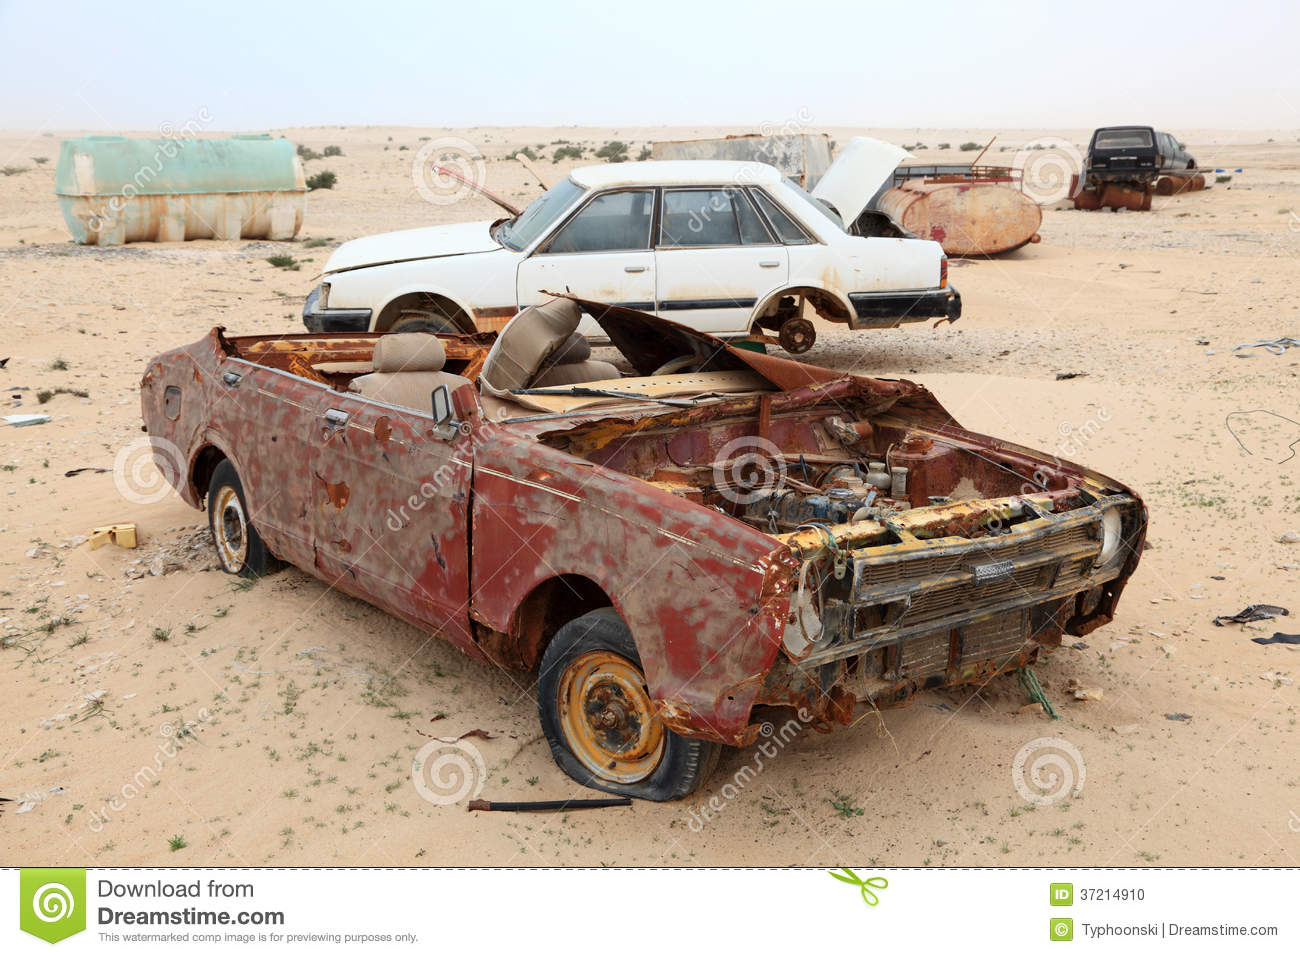 Sell Junk Cars >> Abandoned Cars In The Desert Stock Photo - Image: 37214910